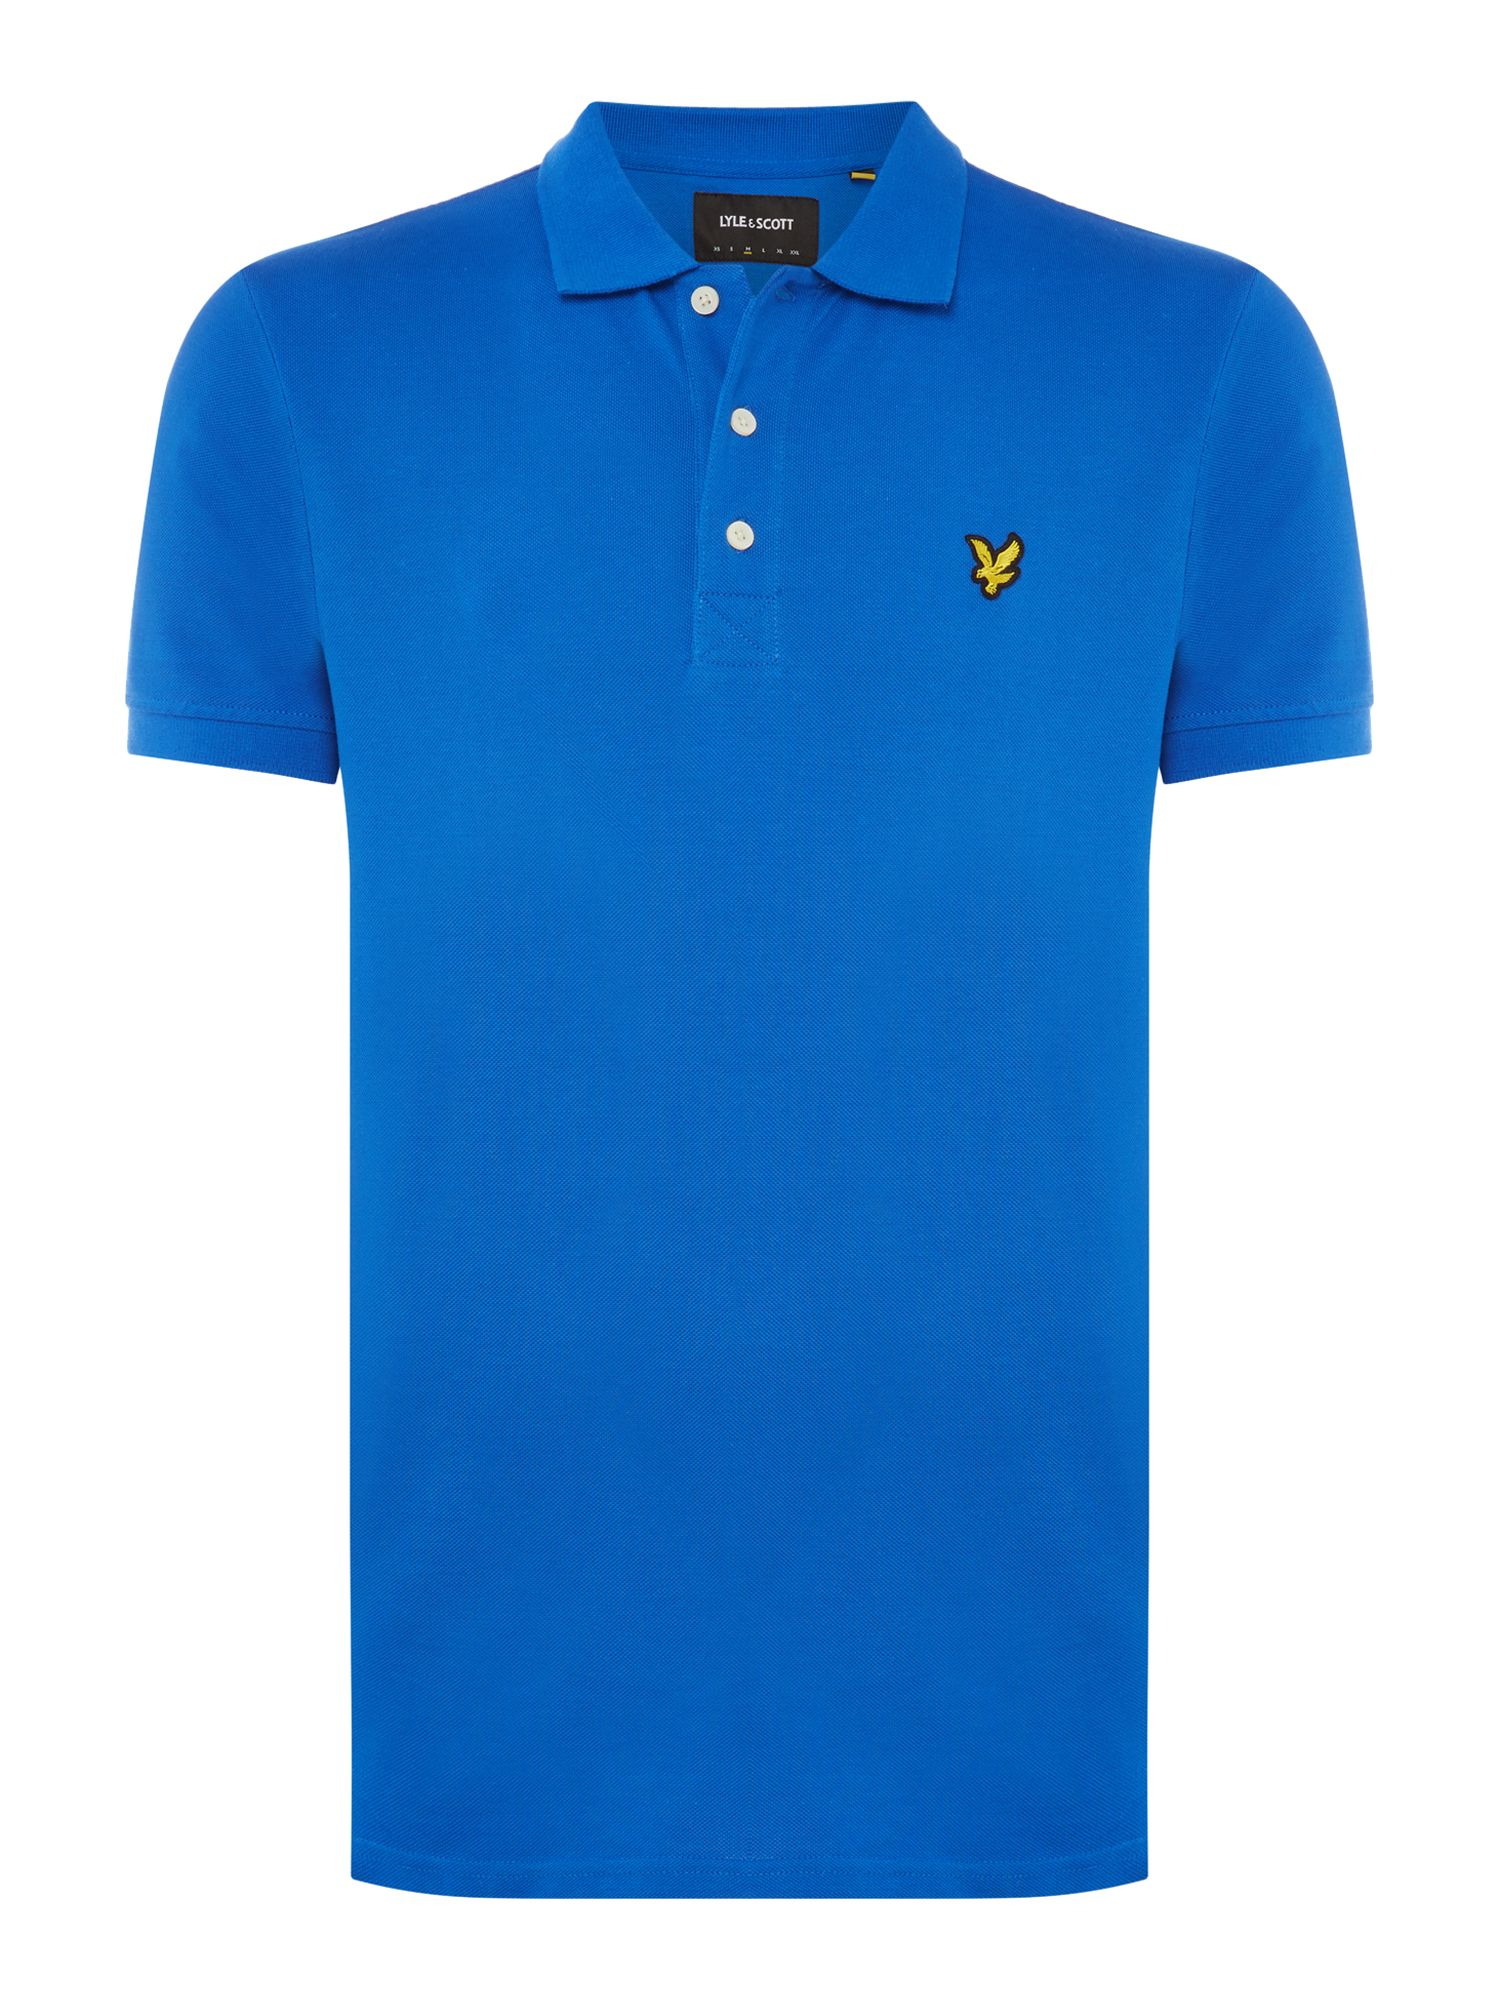 Men's Lyle and Scott Short Sleeve Classic Polo, Bright Blue